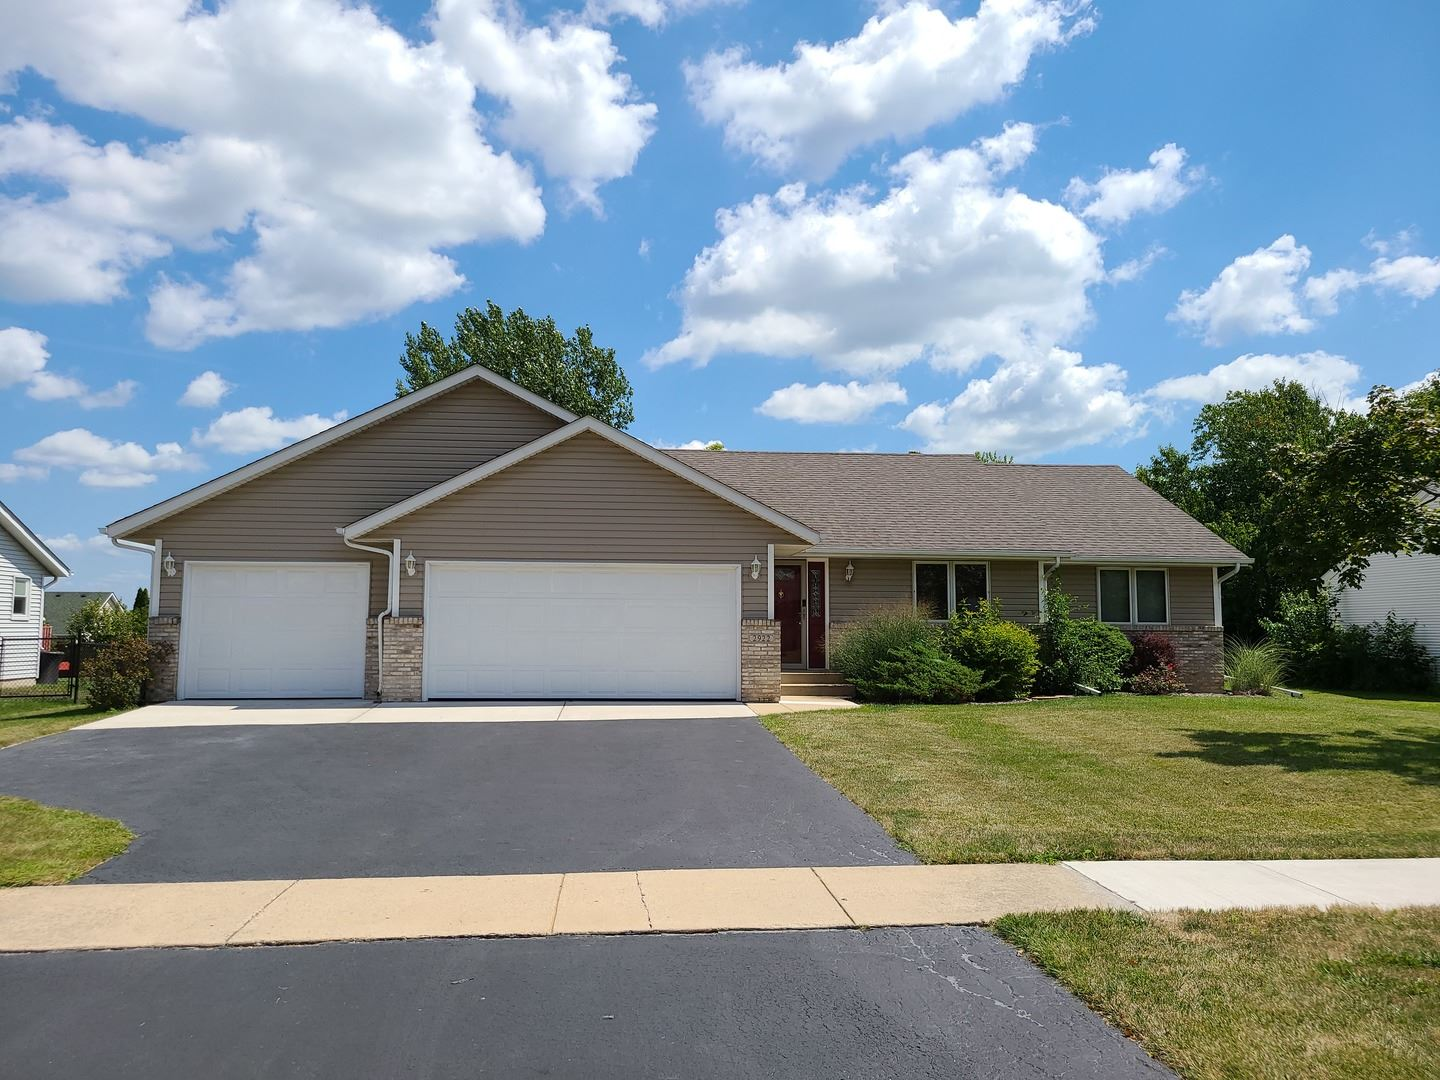 2922 SWANSON Parkway, Rockford, IL 61109 - #: 10812395